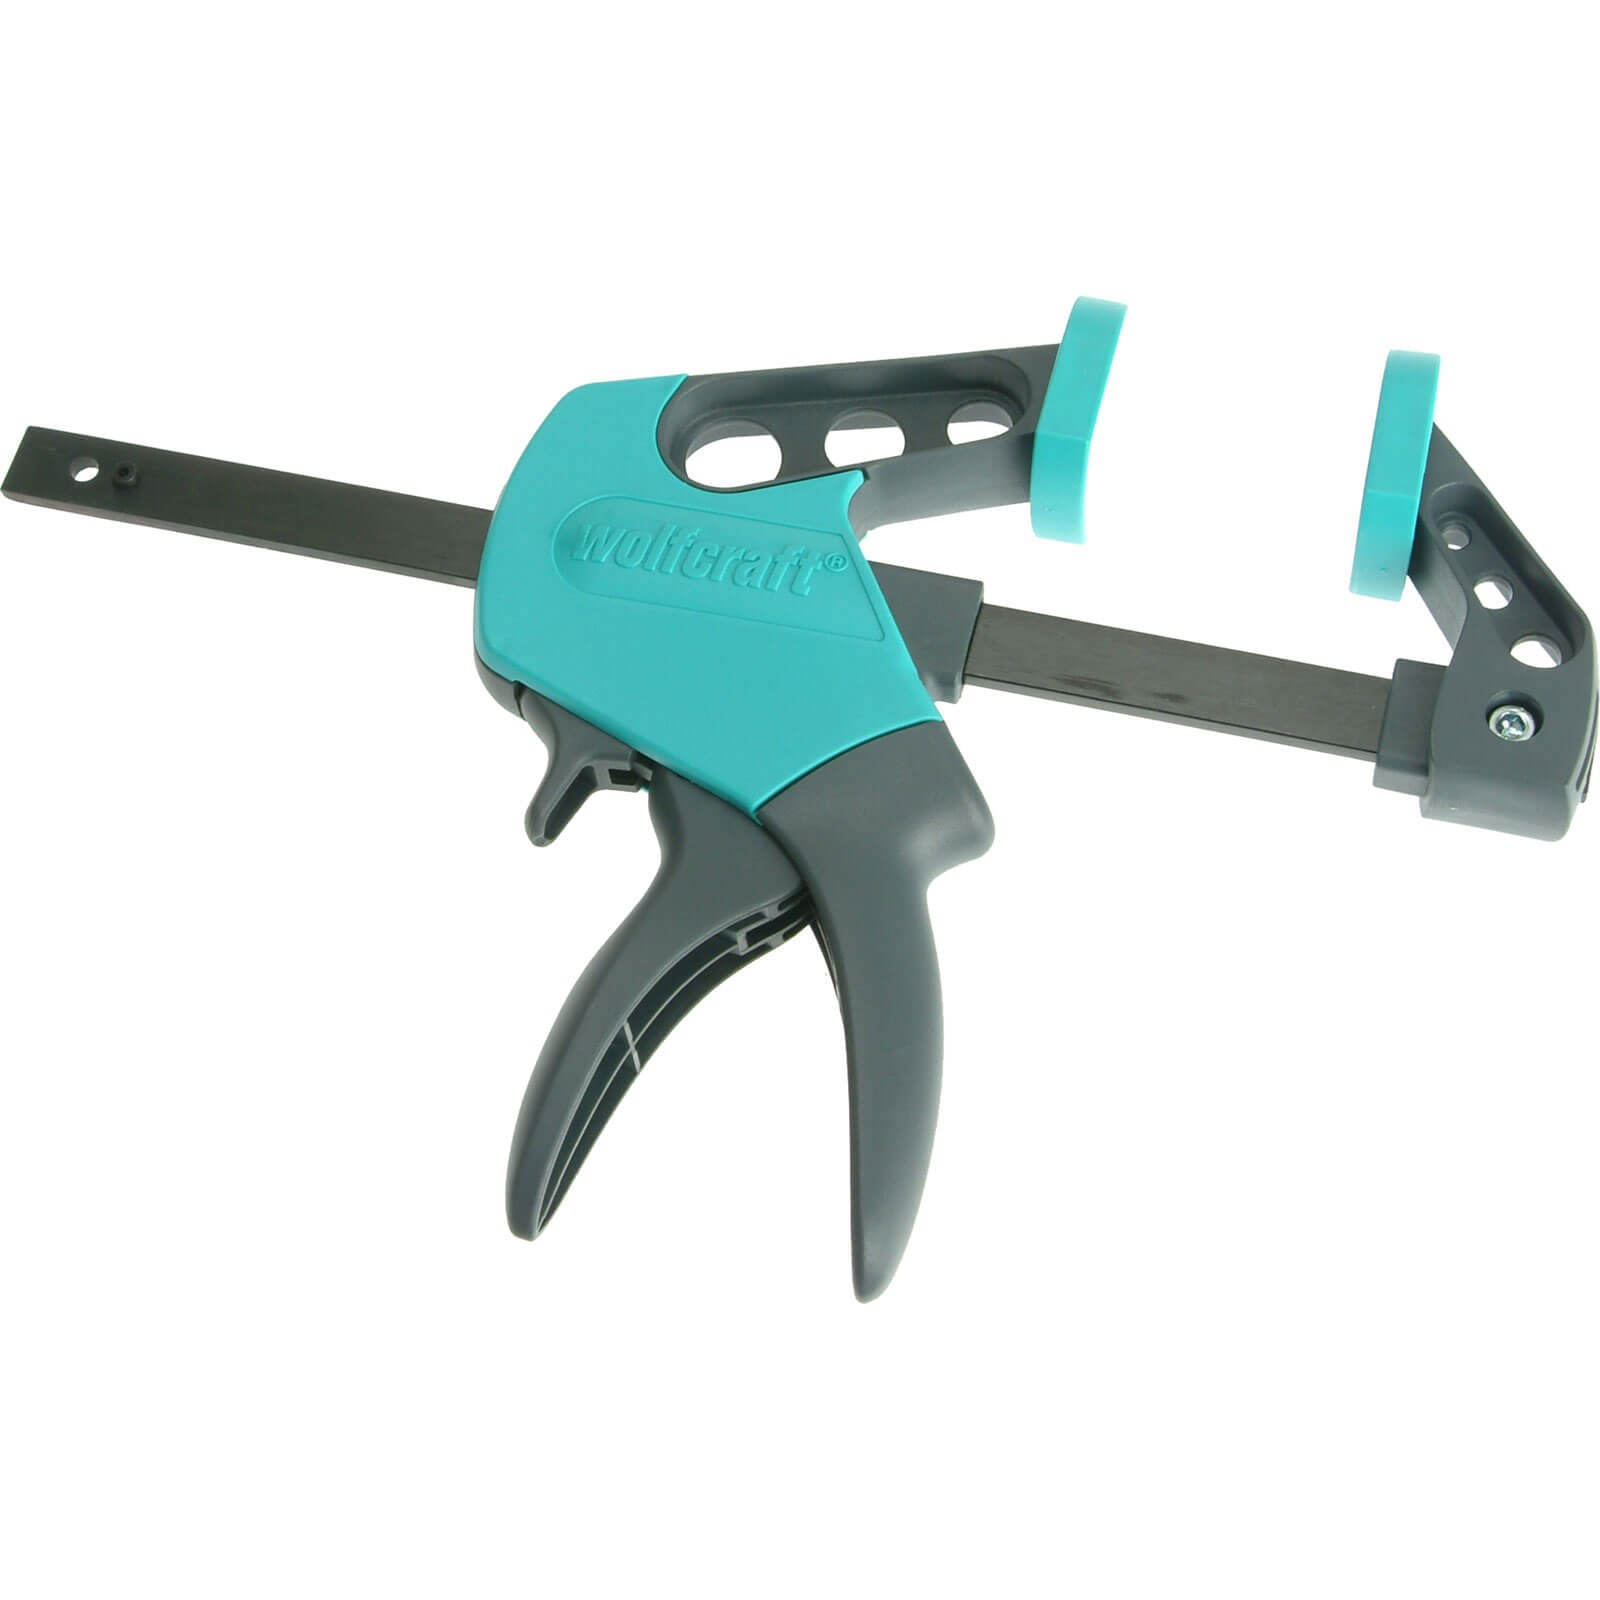 ZZZ Wolfcraft Easy One Hand Clamp